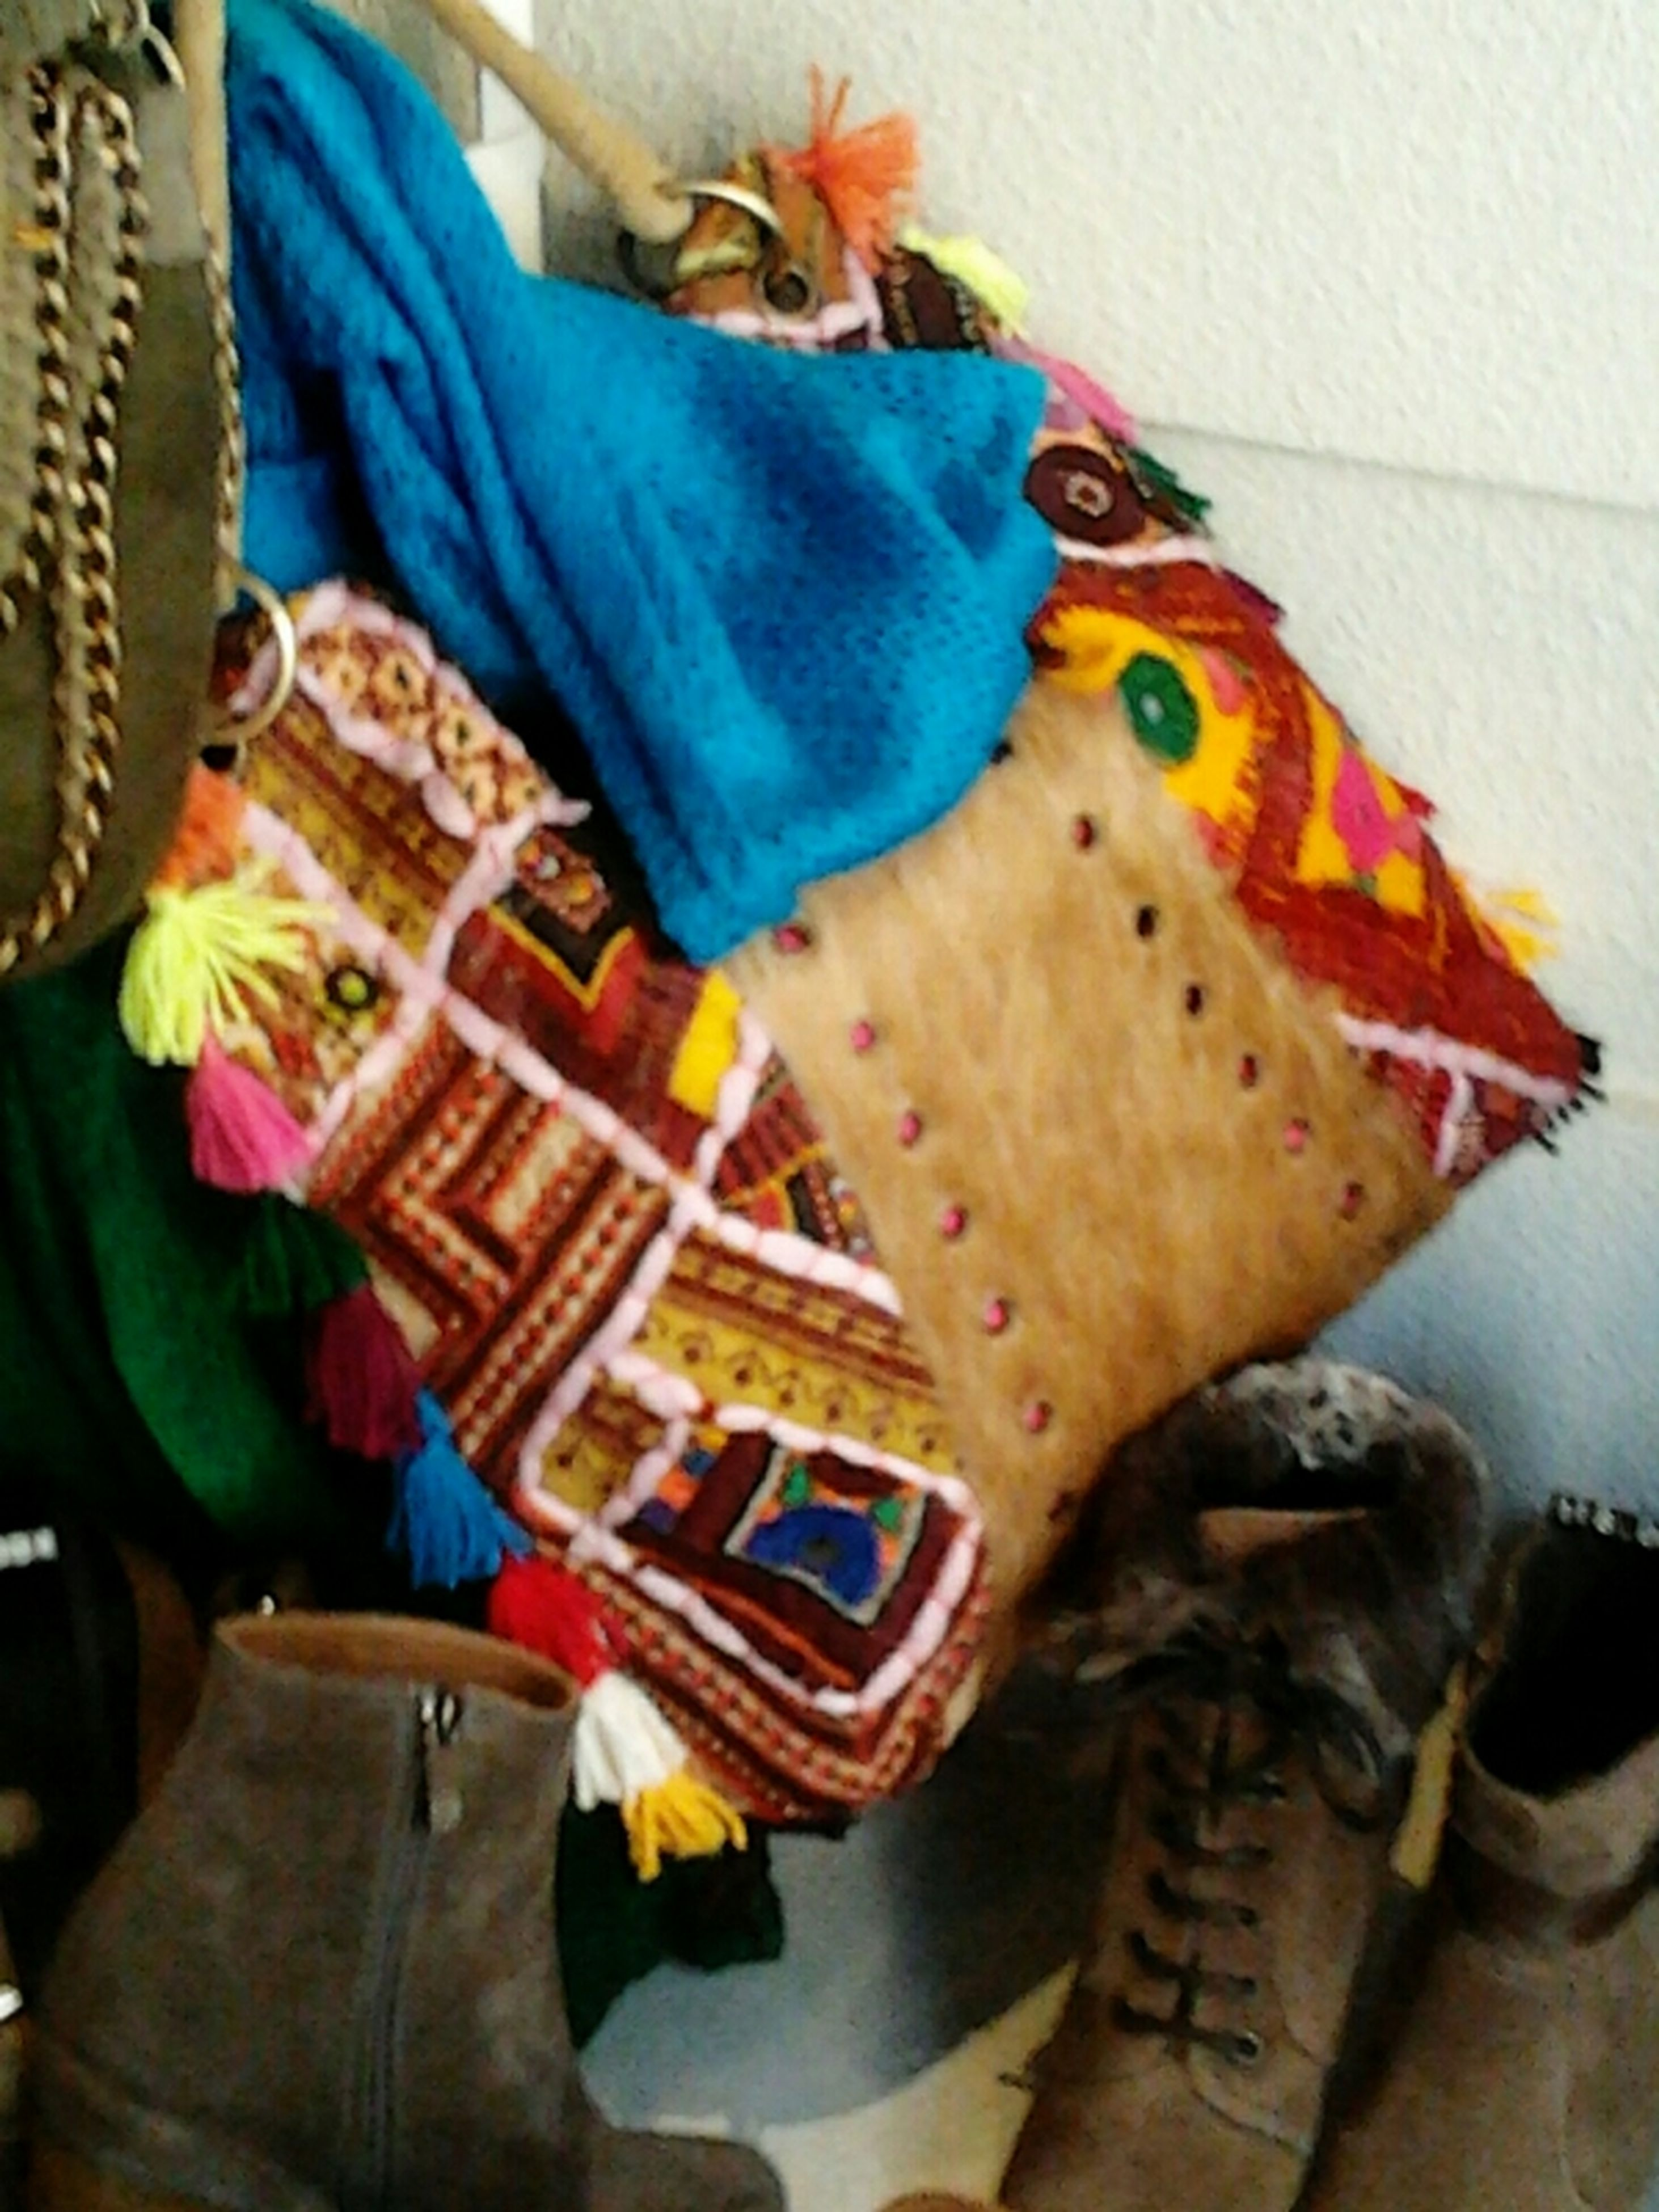 indoors, high angle view, fabric, close-up, textile, unrecognizable person, men, home interior, holding, food, multi colored, one animal, animal representation, day, lifestyles, food and drink, clothing